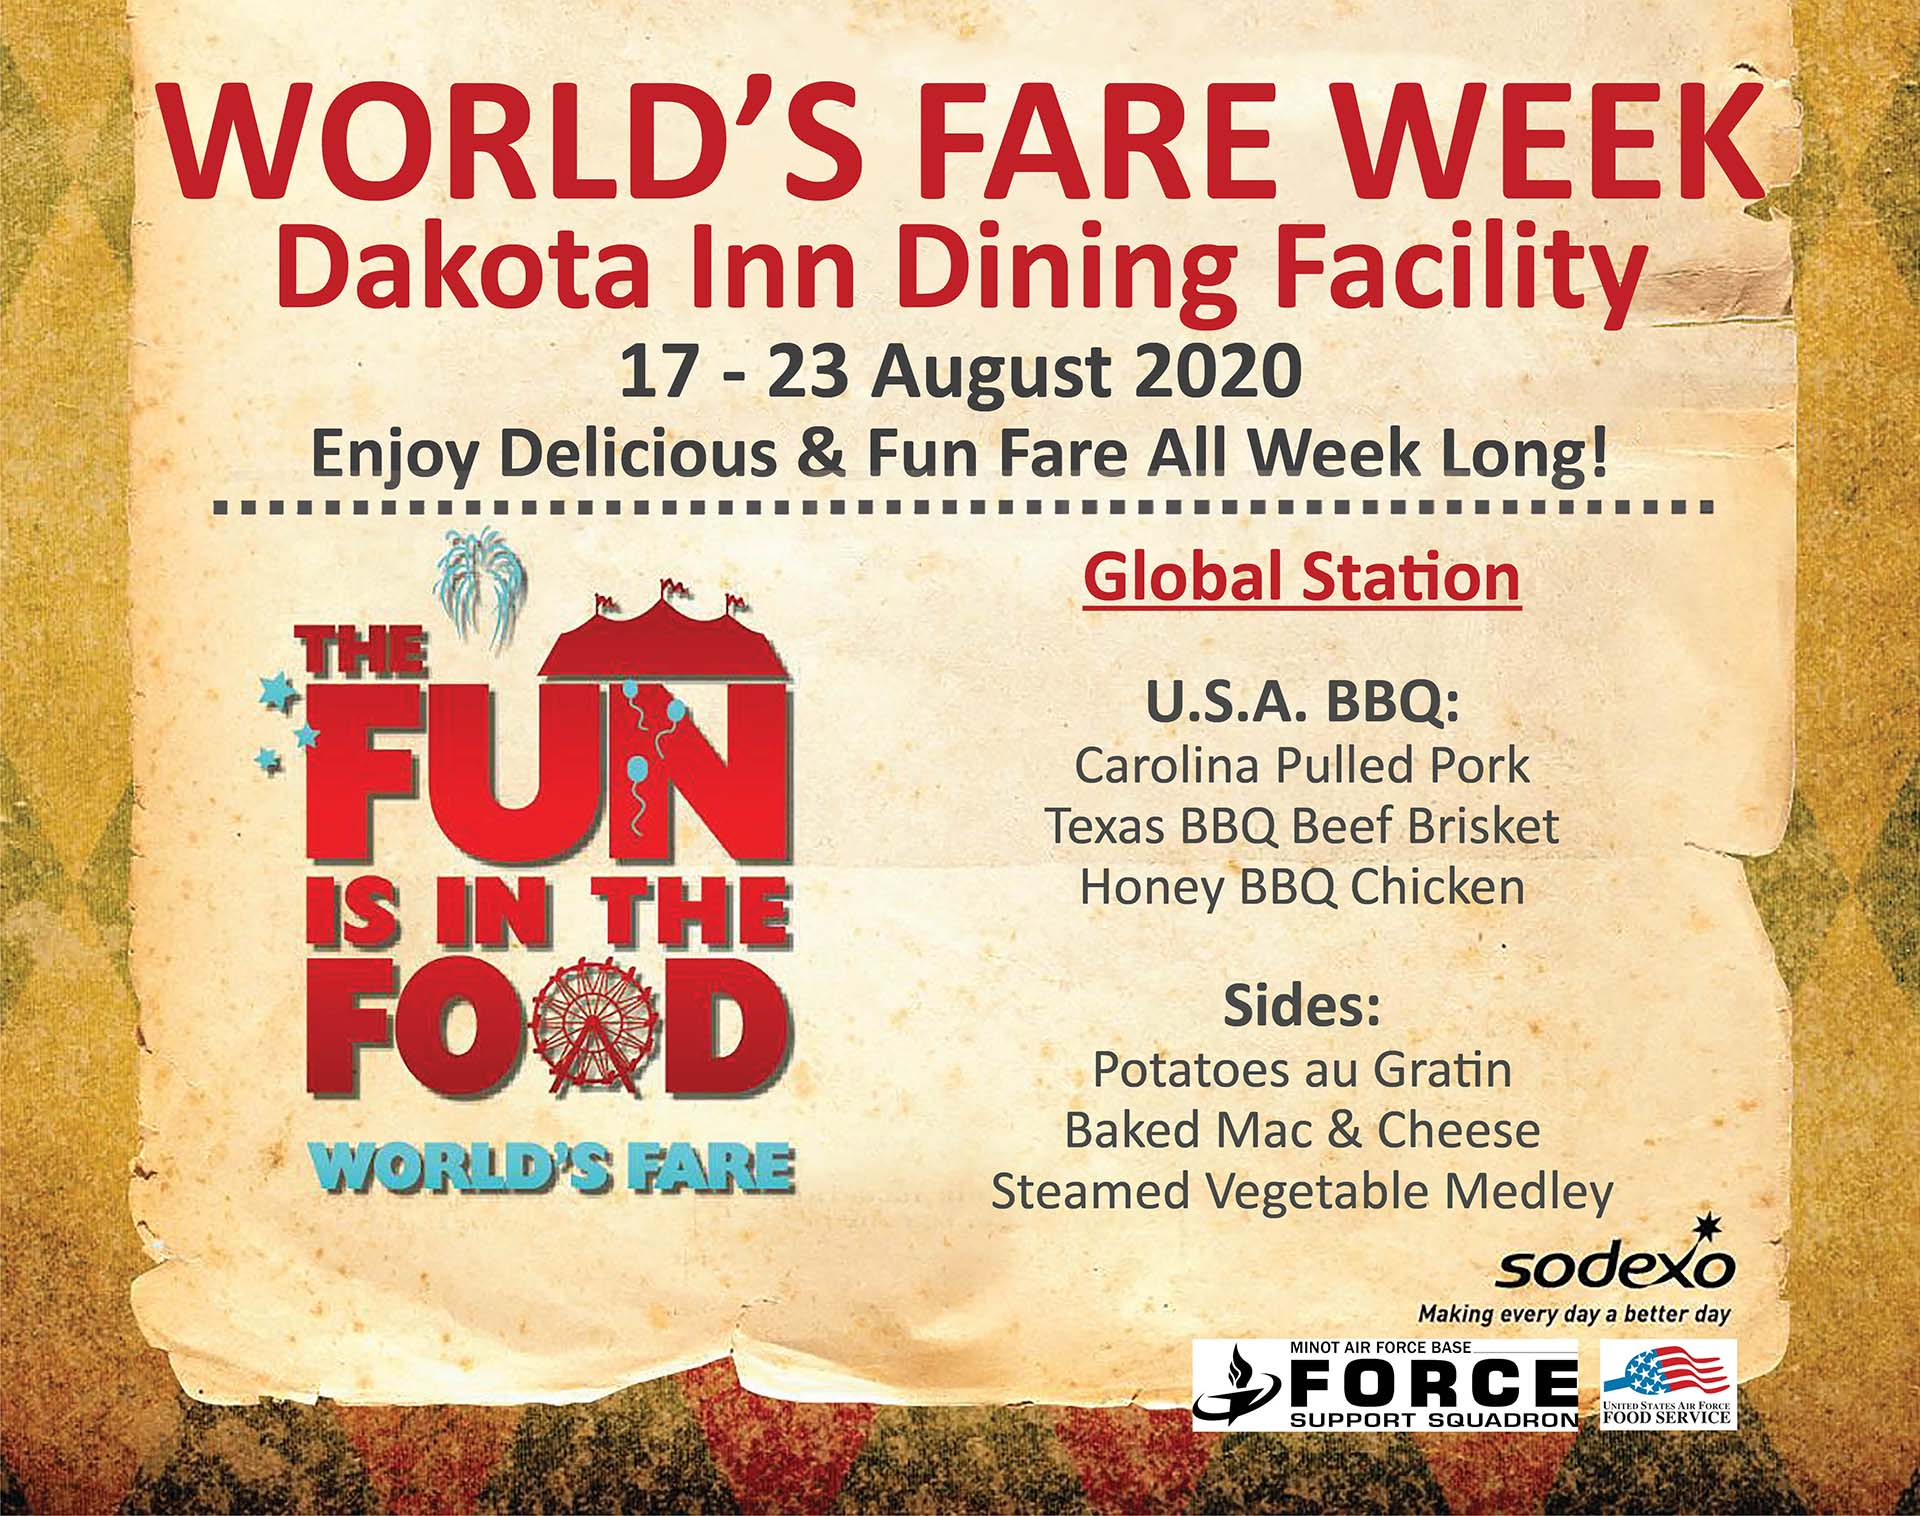 08.17-23 Worlds Fare - Global Station